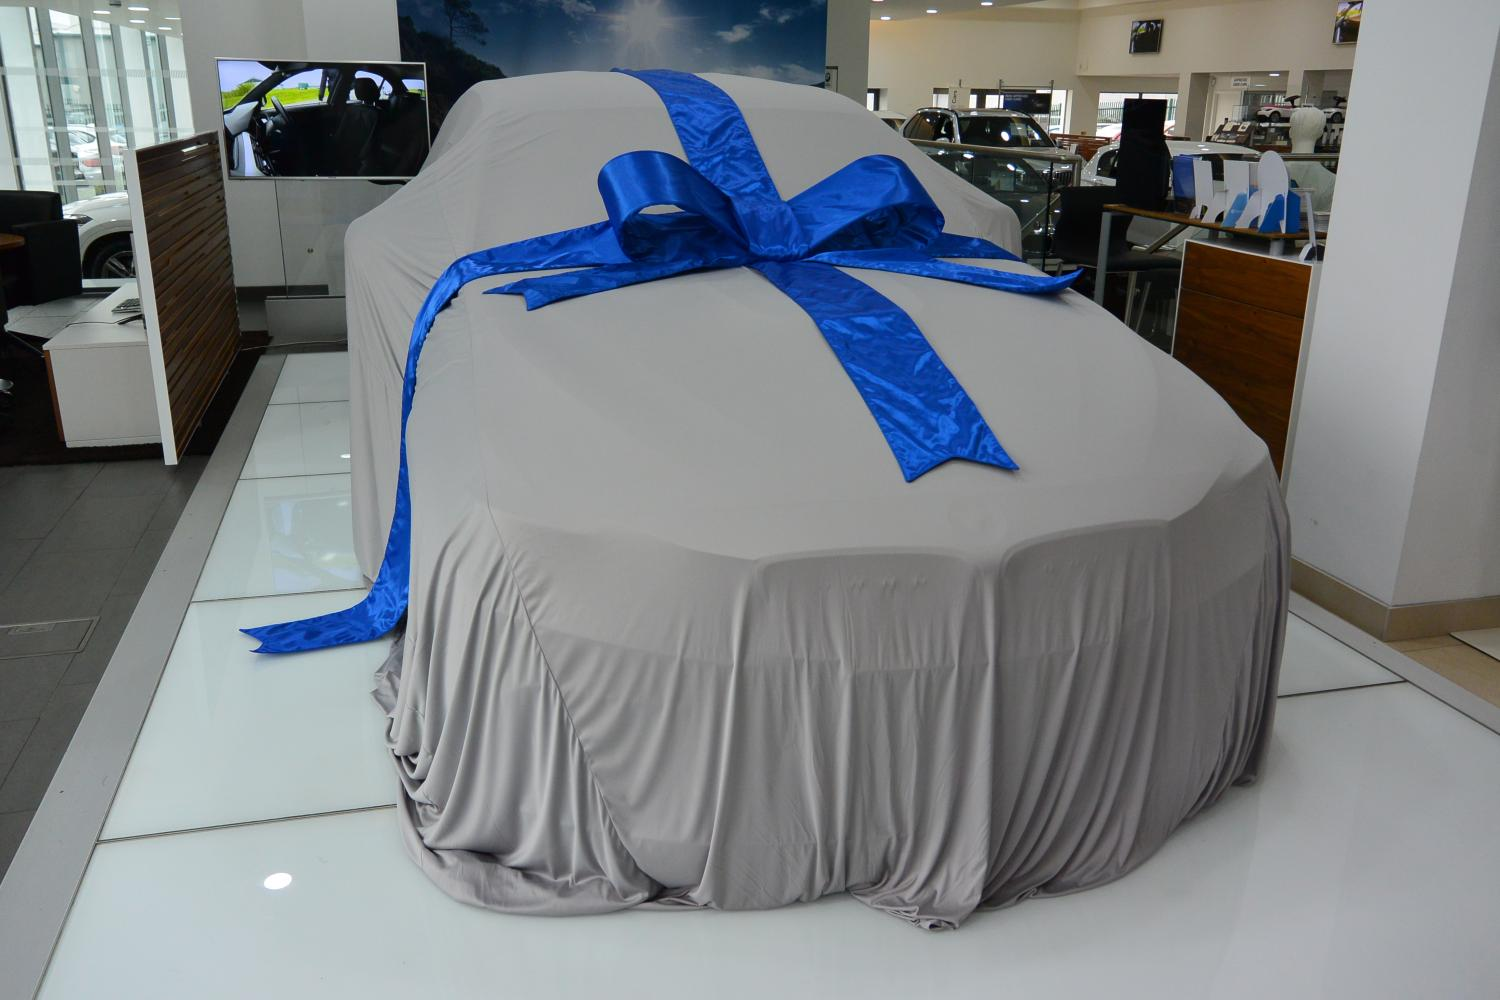 Zingy Reveal Launch Car Cover In Reveal Launch Car Covers